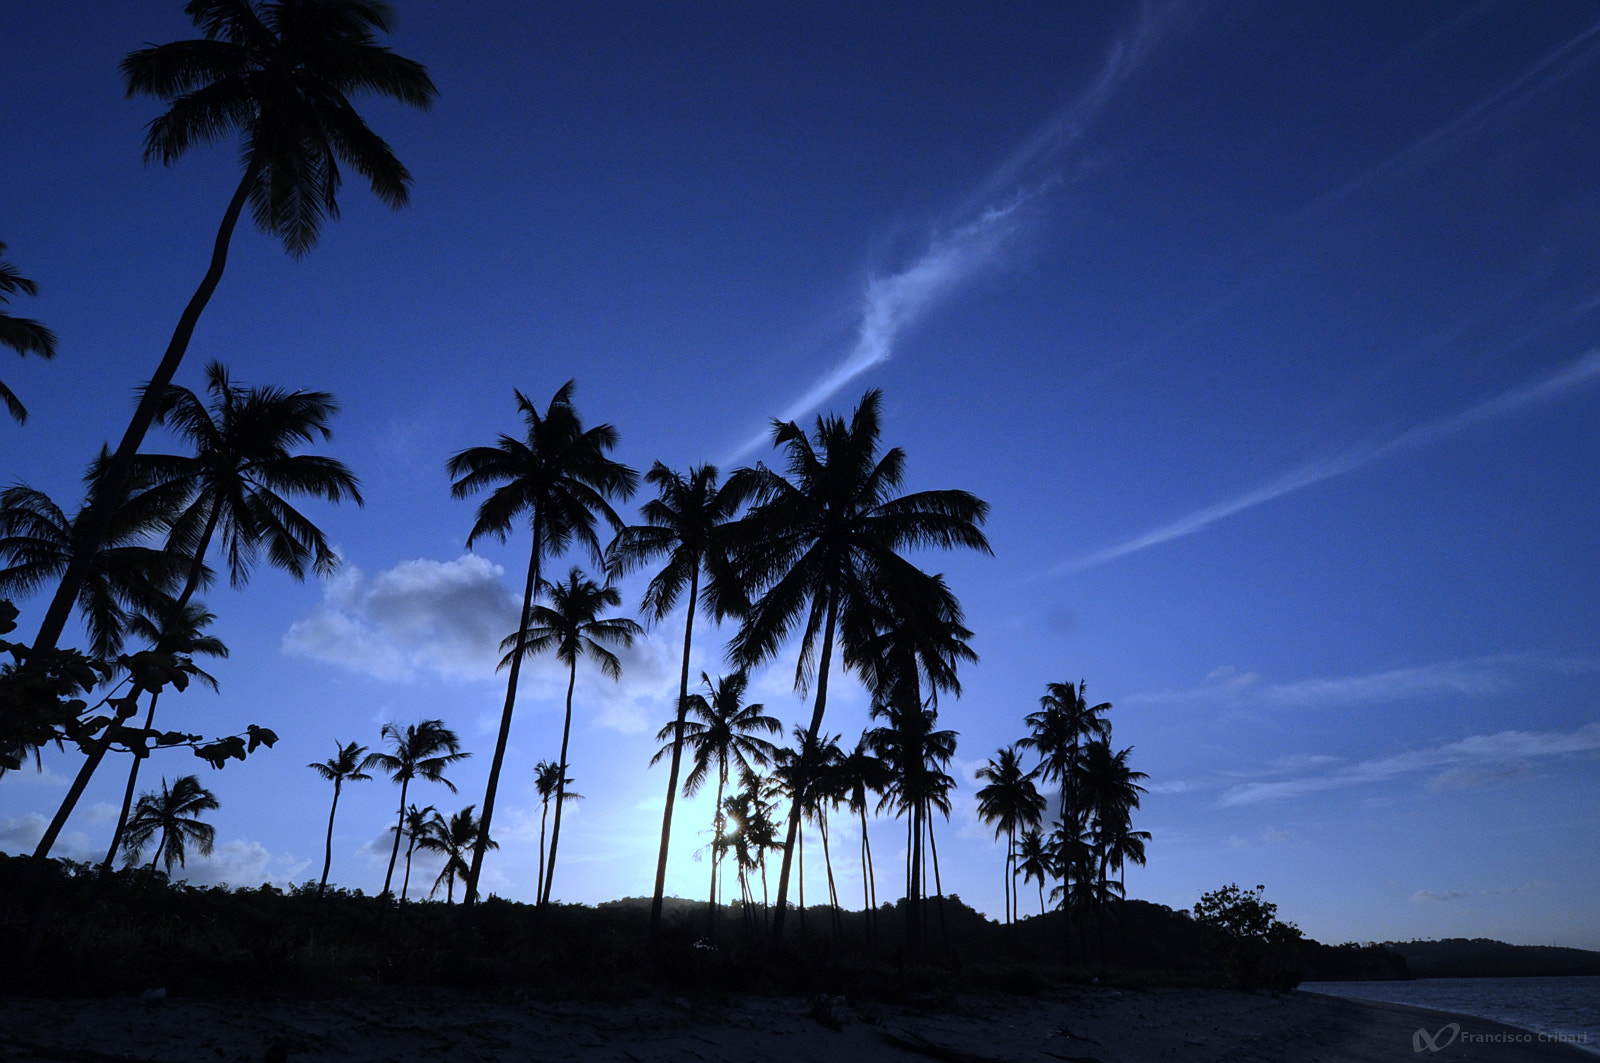 Photograph Coqueiros // Coconut trees by Francisco Cribari on 500px